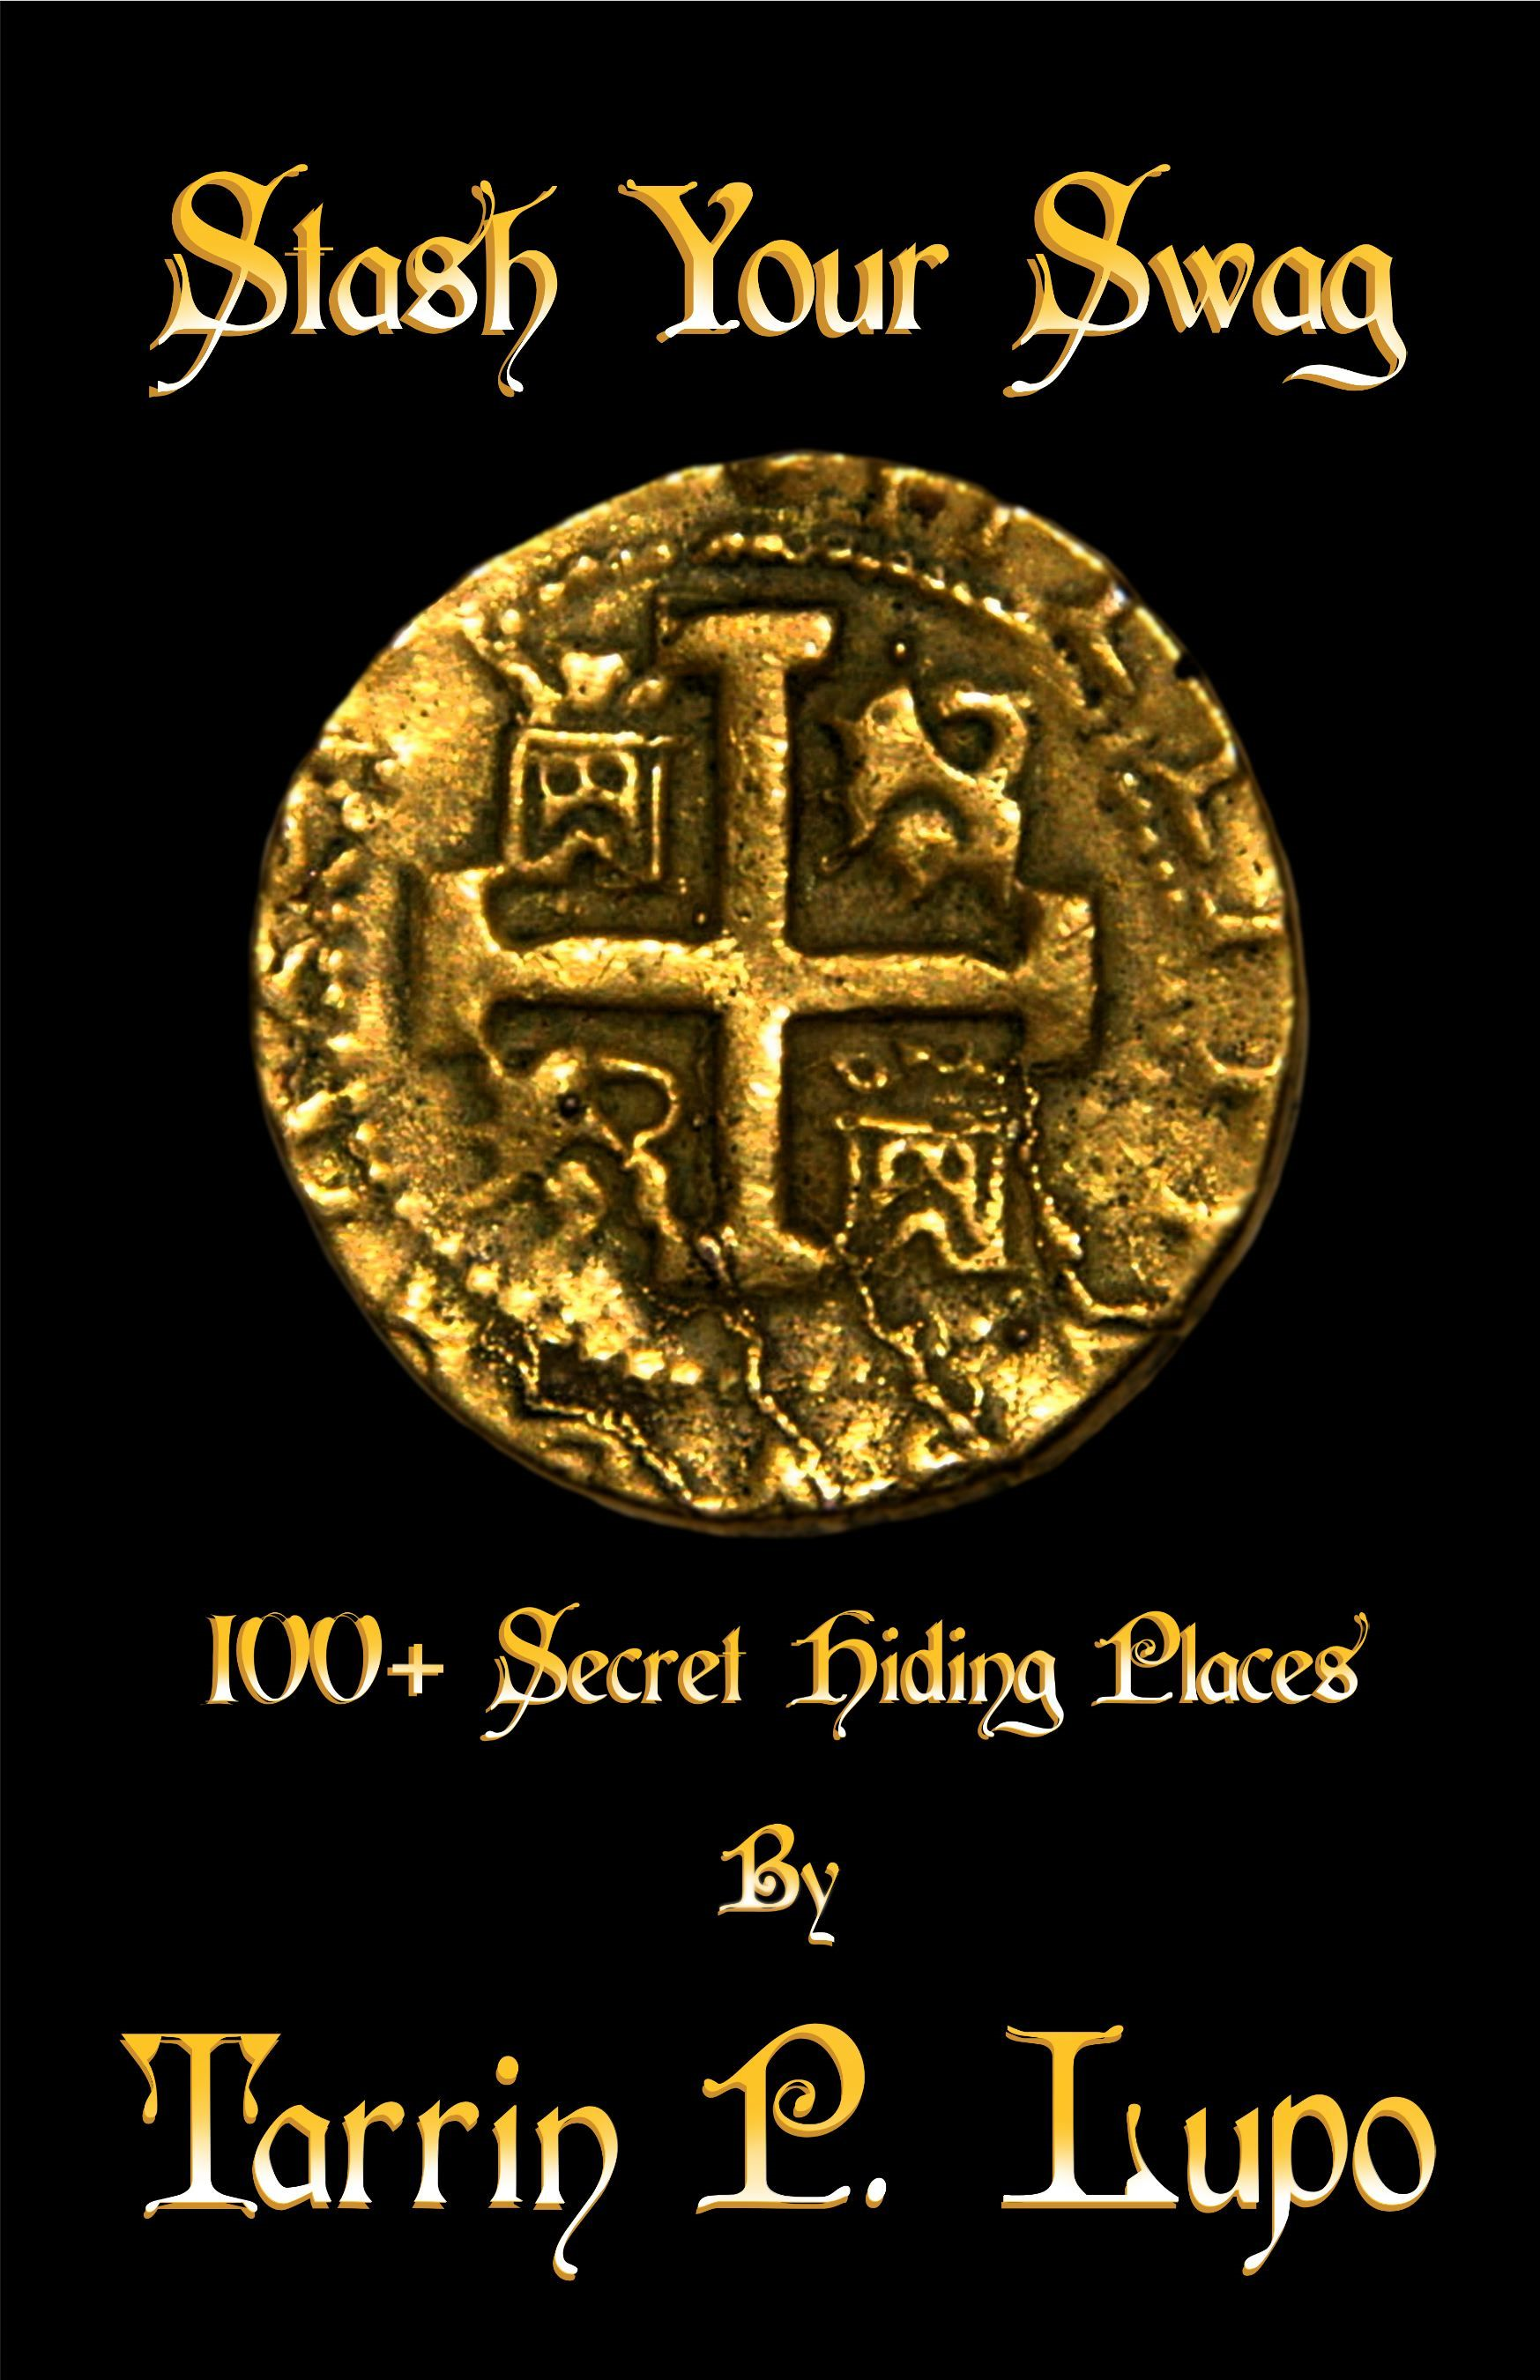 Stash Your Swag: 100+ Secret Hiding Places - Reference Handbook and Manual for Secret Hiding Places and Puzzles By: Tarrin P. Lupo